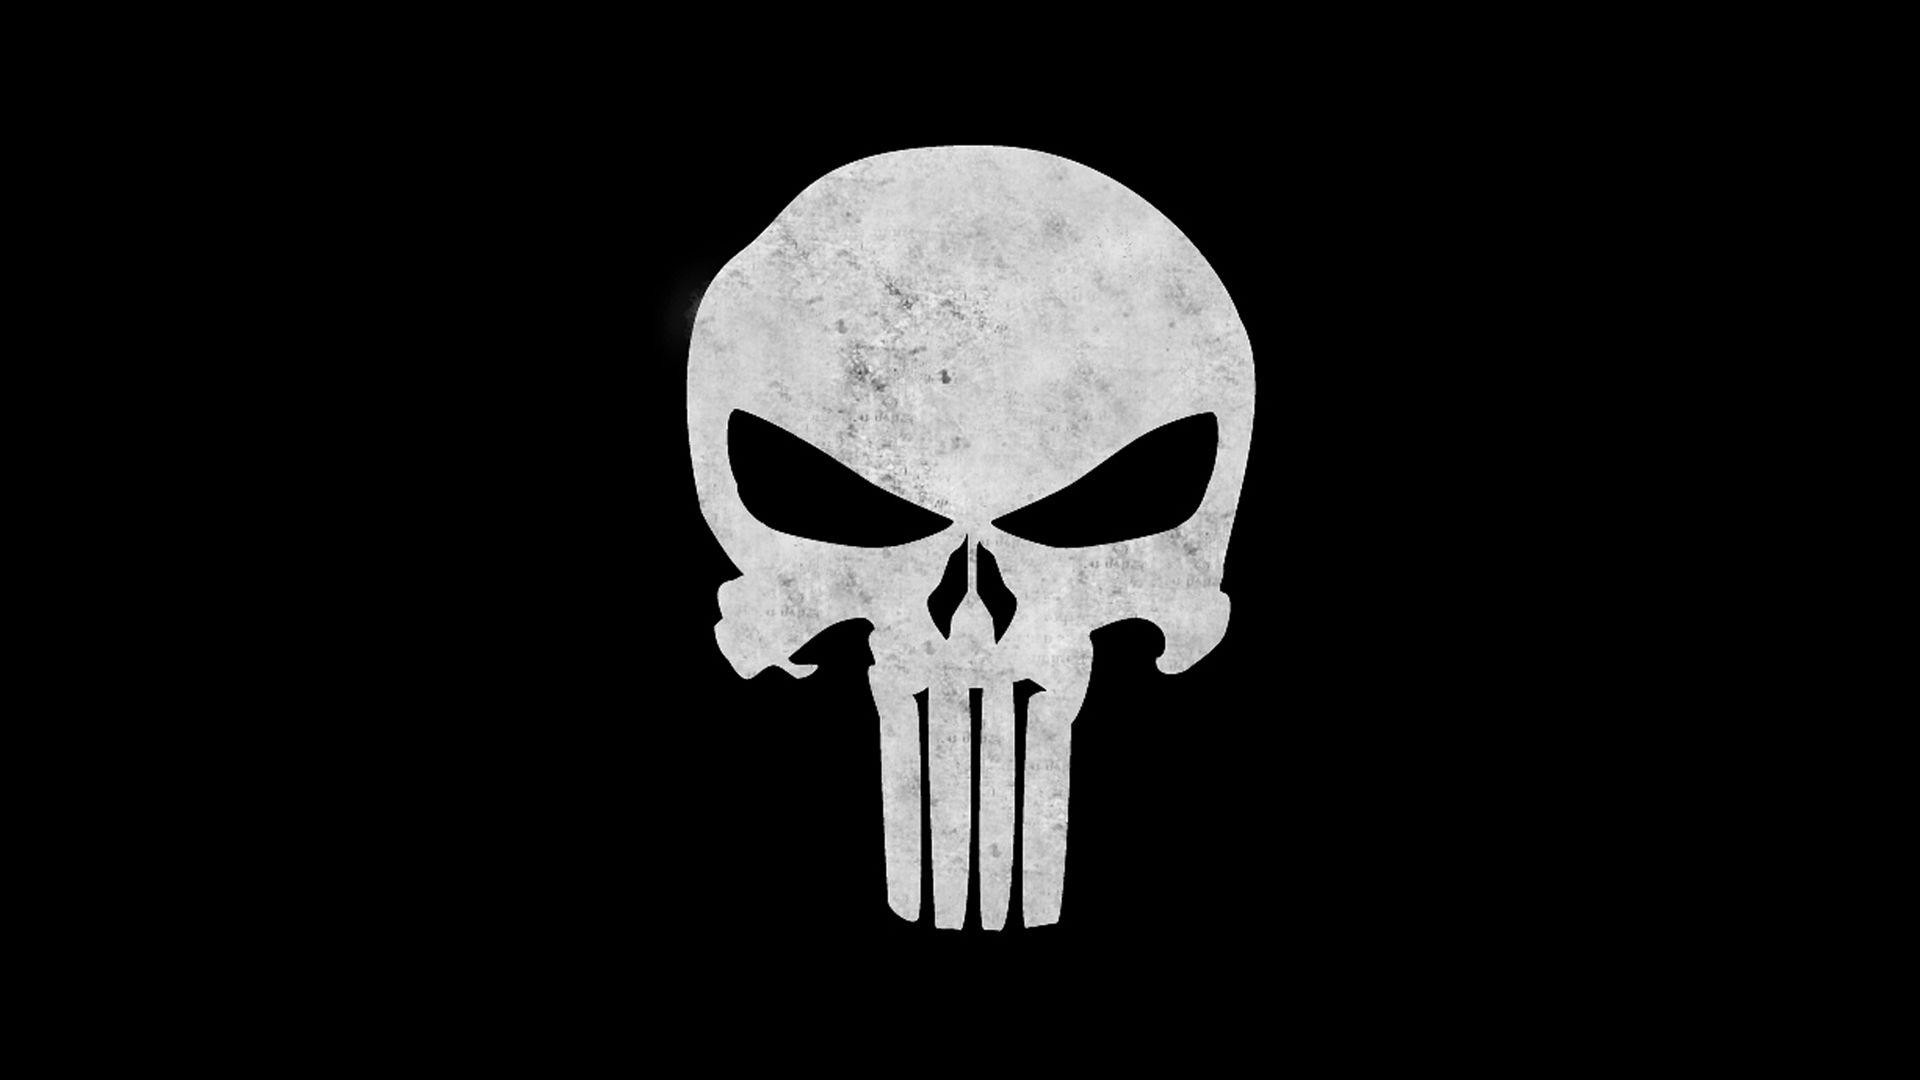 1920x1080 punisher wallpaper skull - www.